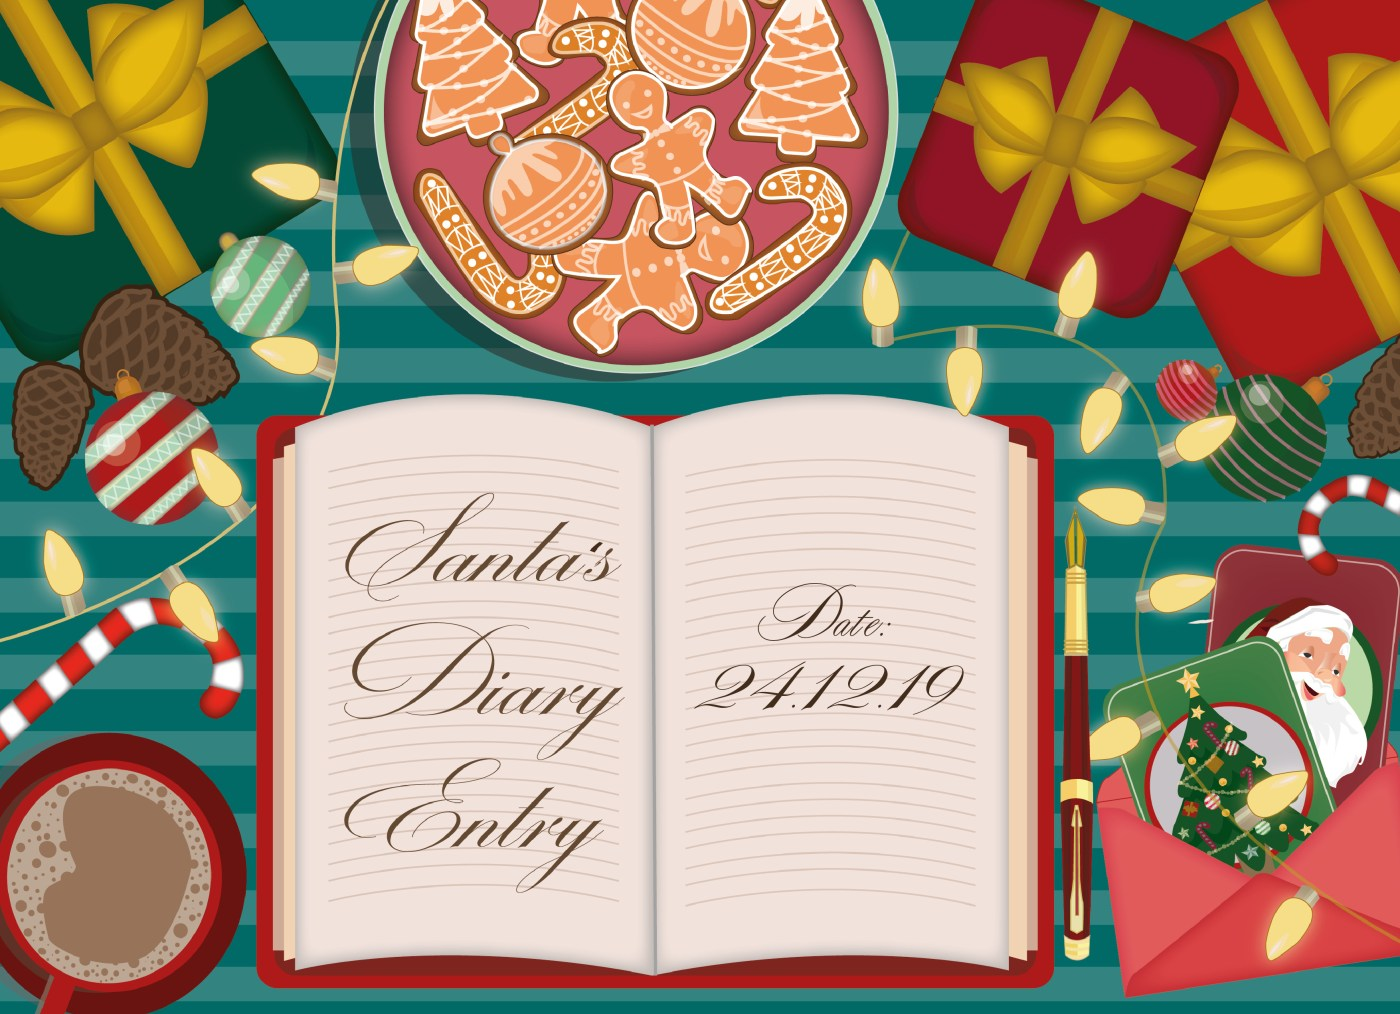 Santa's Diary Featured Image